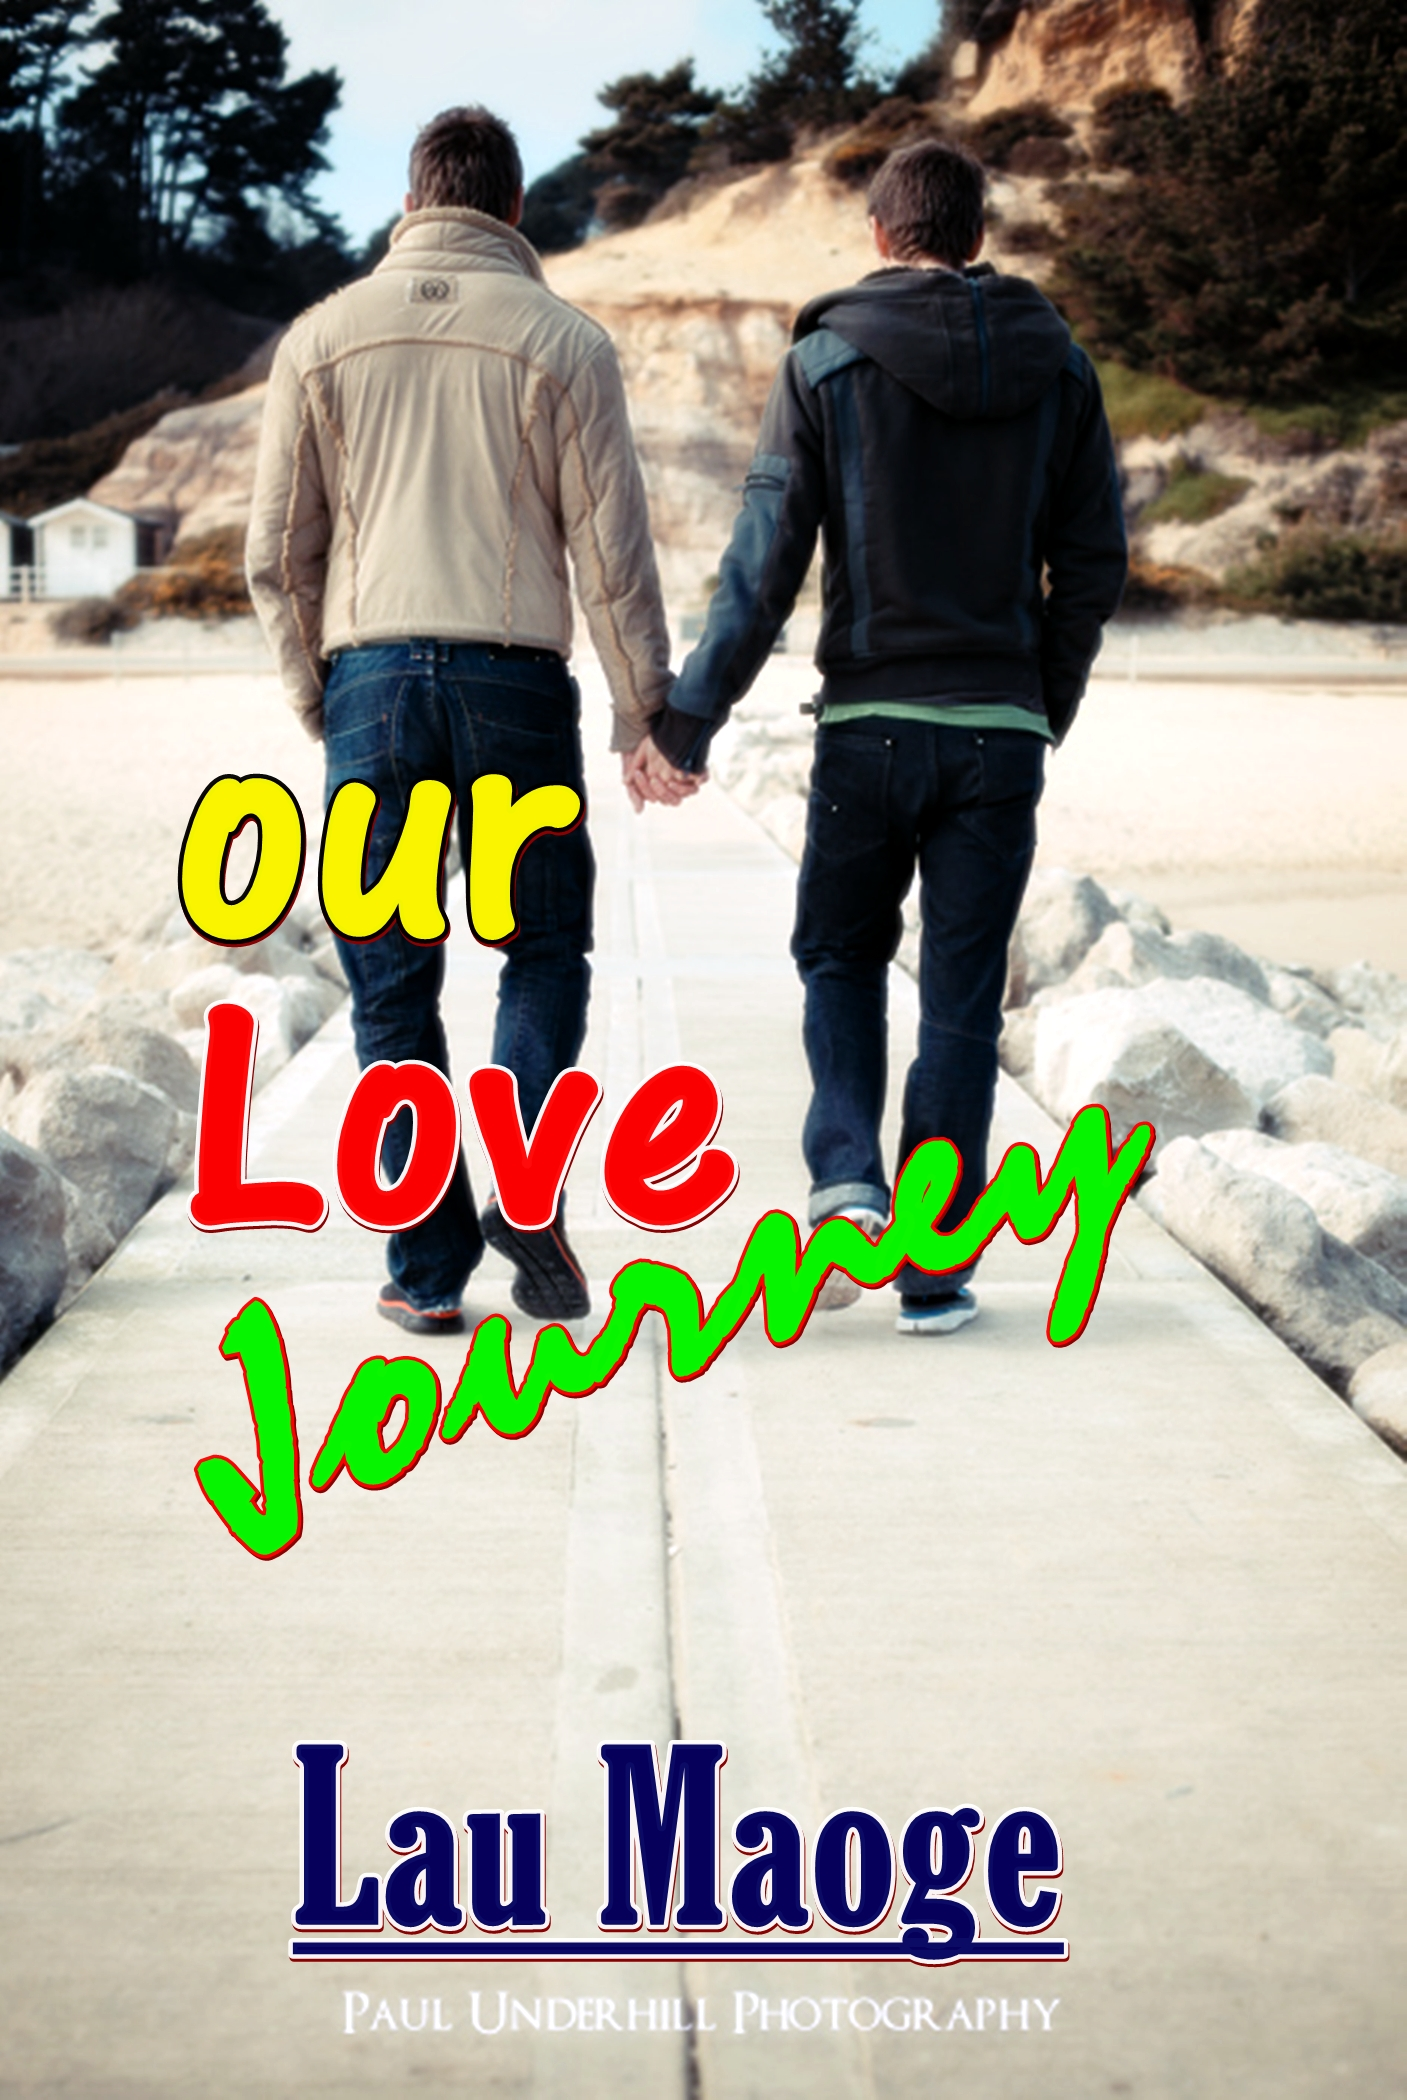 OUR LOVE JOURNEY